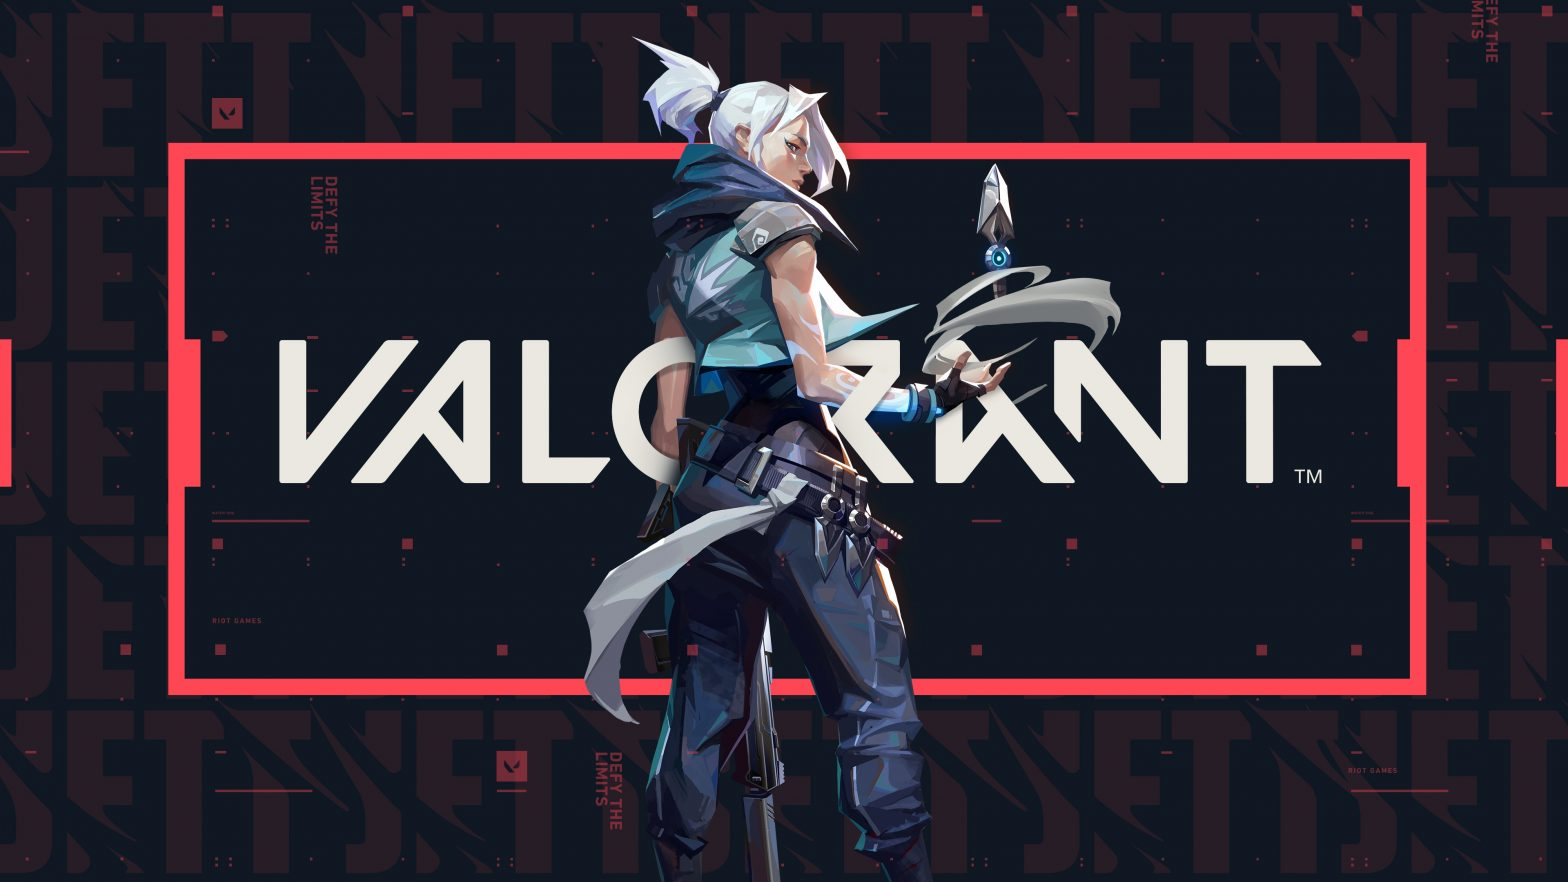 Free Valorant Points Hacks - August 2021 Updated